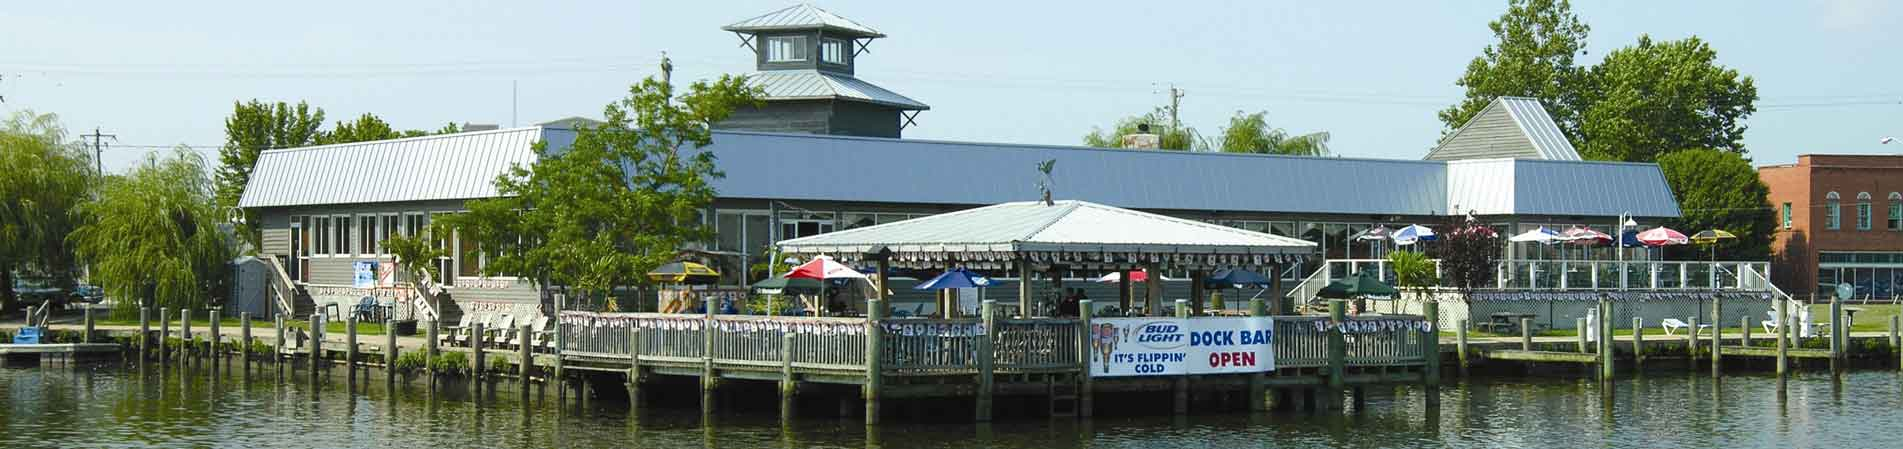 exterior of brew river restaurant